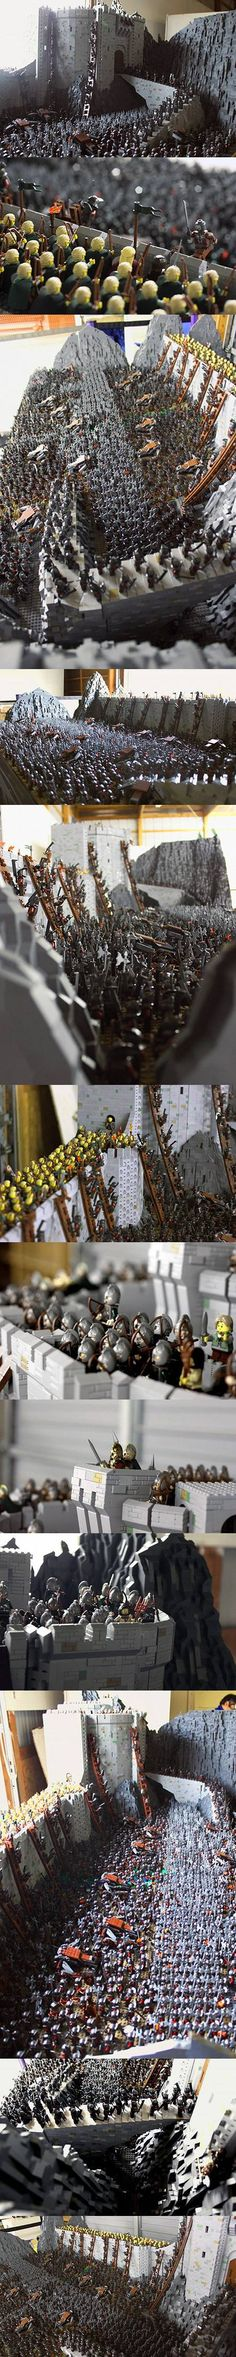 LEGO master recreates Lord of the Rings Battle of Helm's Deep with 150,000…